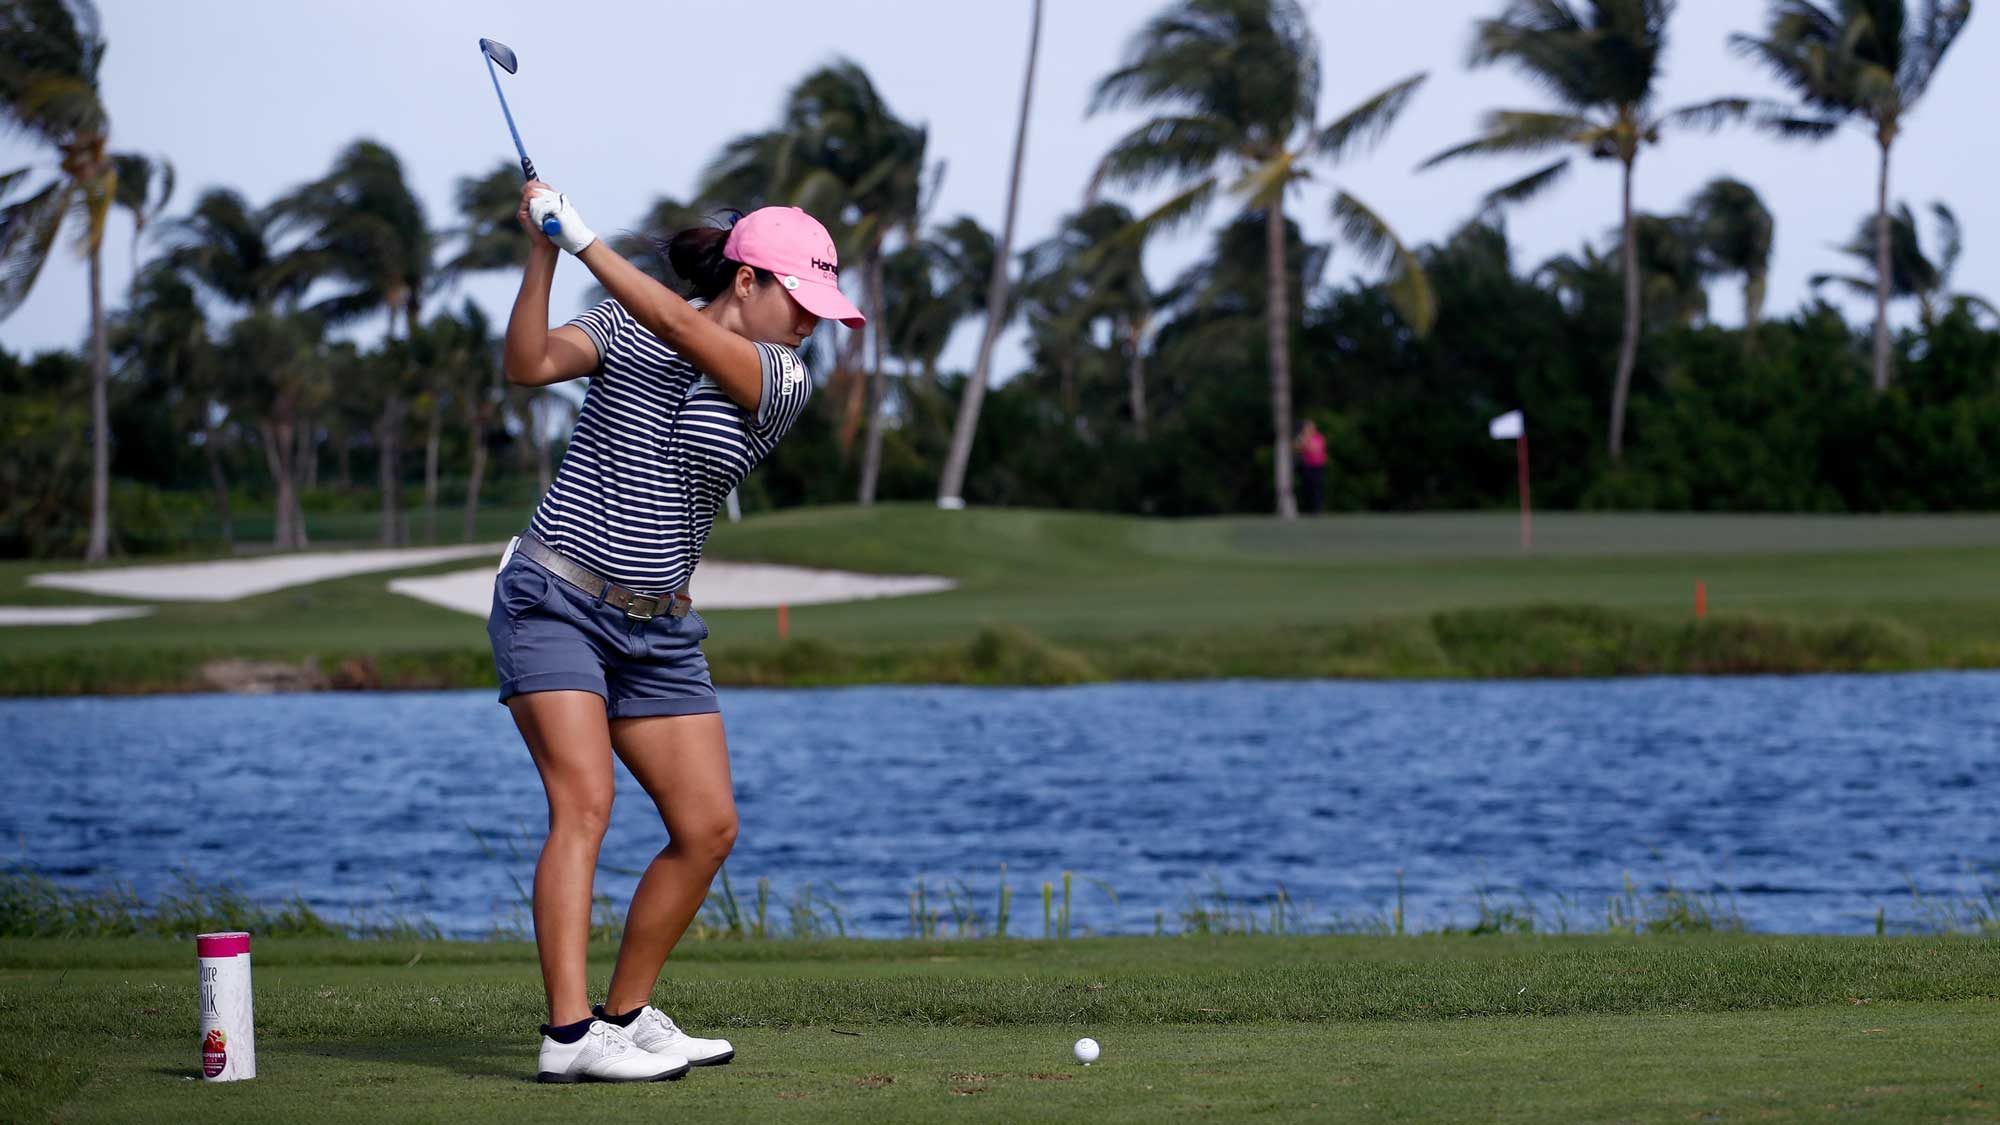 In-Kyung Kim of the Republic of Korea hits her tee shot on the third hole during the second round of the Pure Silk Bahamas LPGA Classic